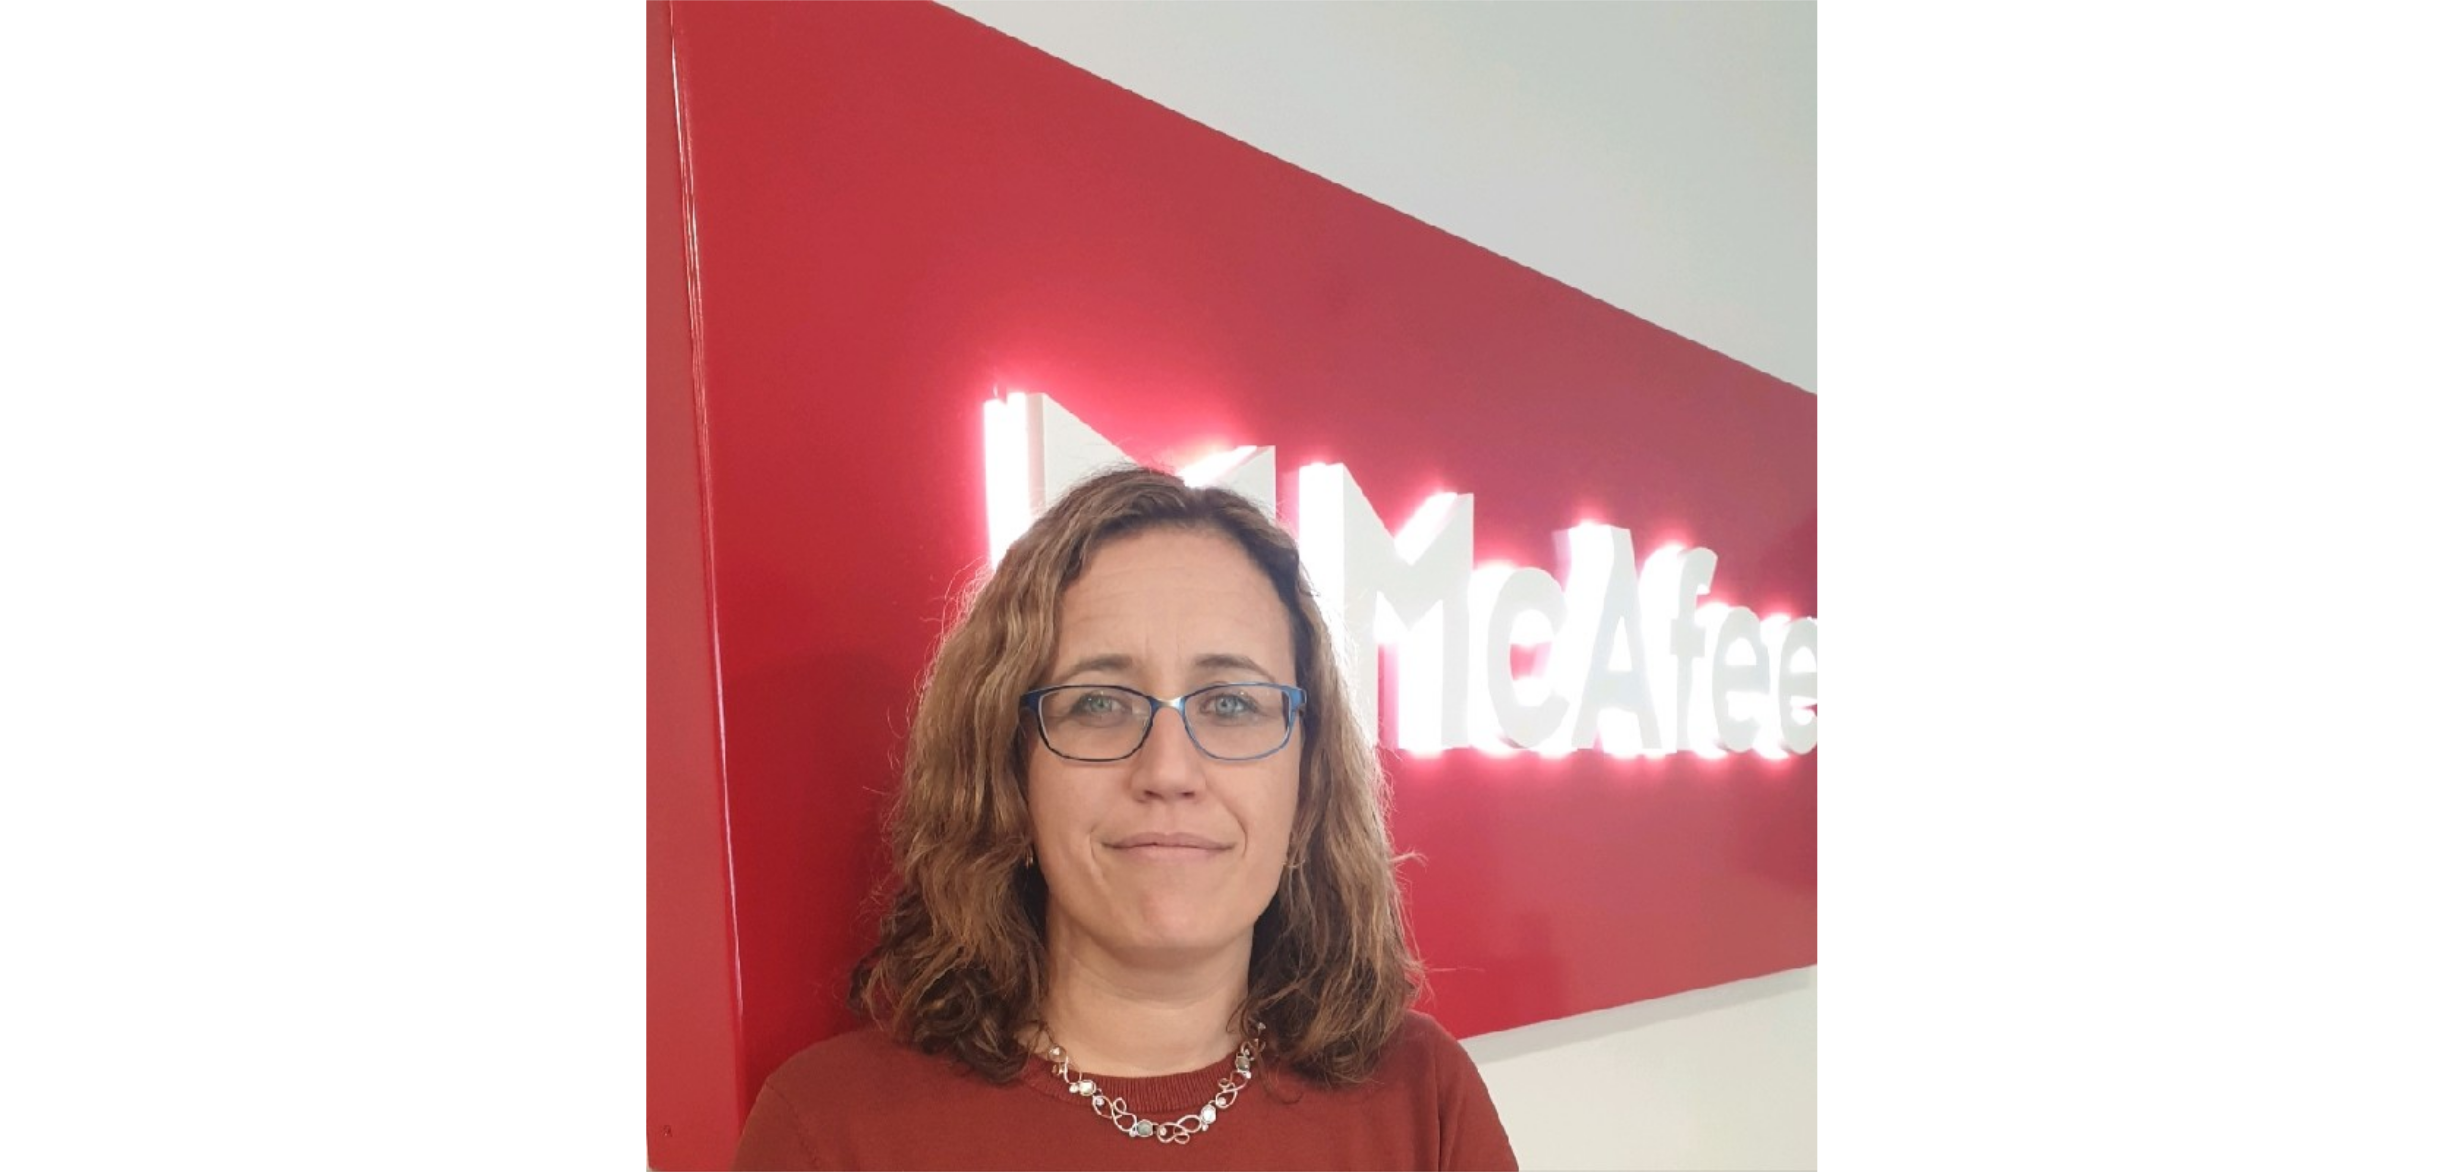 Sorcha Healy, Data Analyst, McAfee